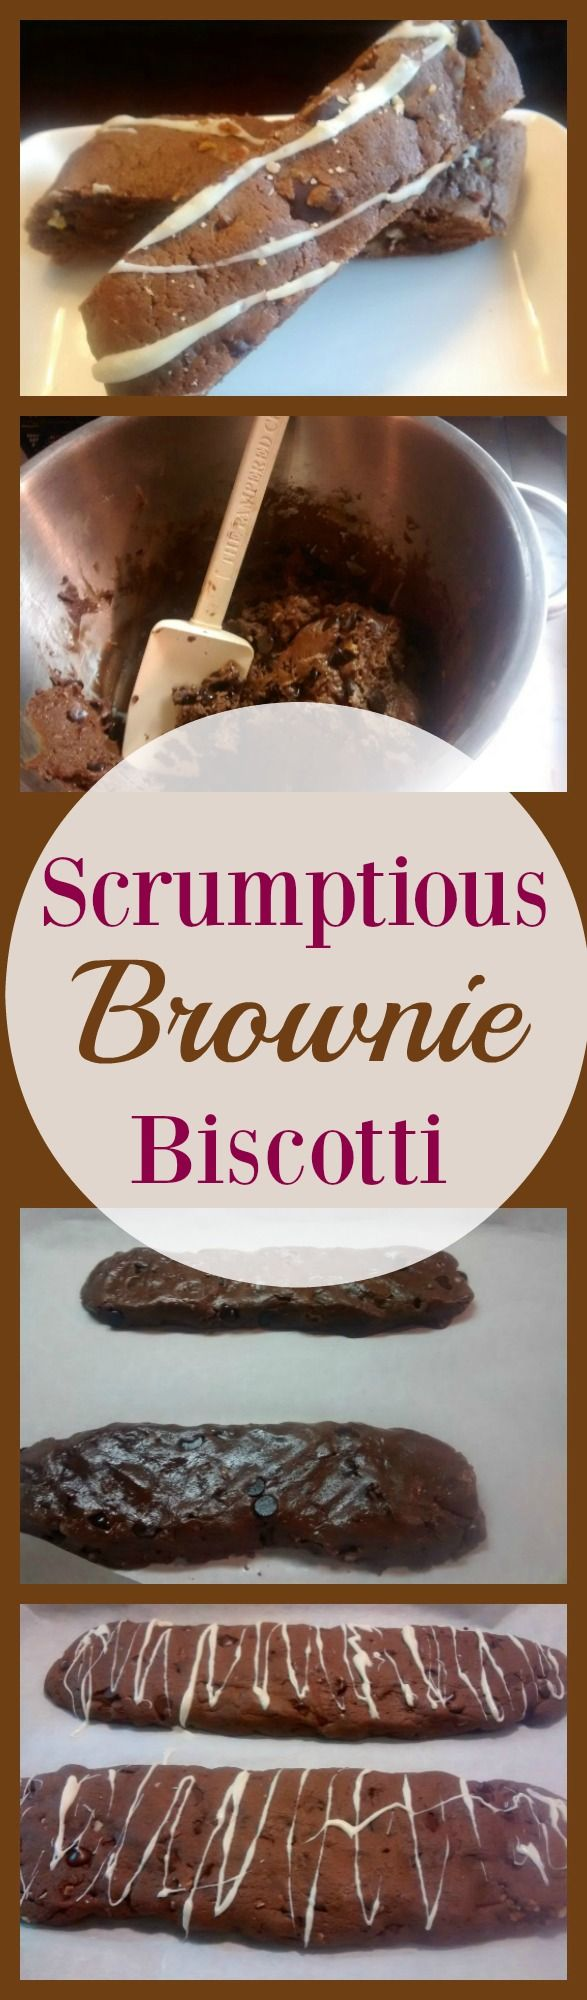 Brownie Biscotti- A chocolate biscotti recipe. This one is very easy to prepare and it makes a ton, making it perfect for cookie swaps! Find the recipe (and 13 days of cookies) here: www.theoliveblogger.com/13-days-of-christmas-baking/brownie-biscotti/